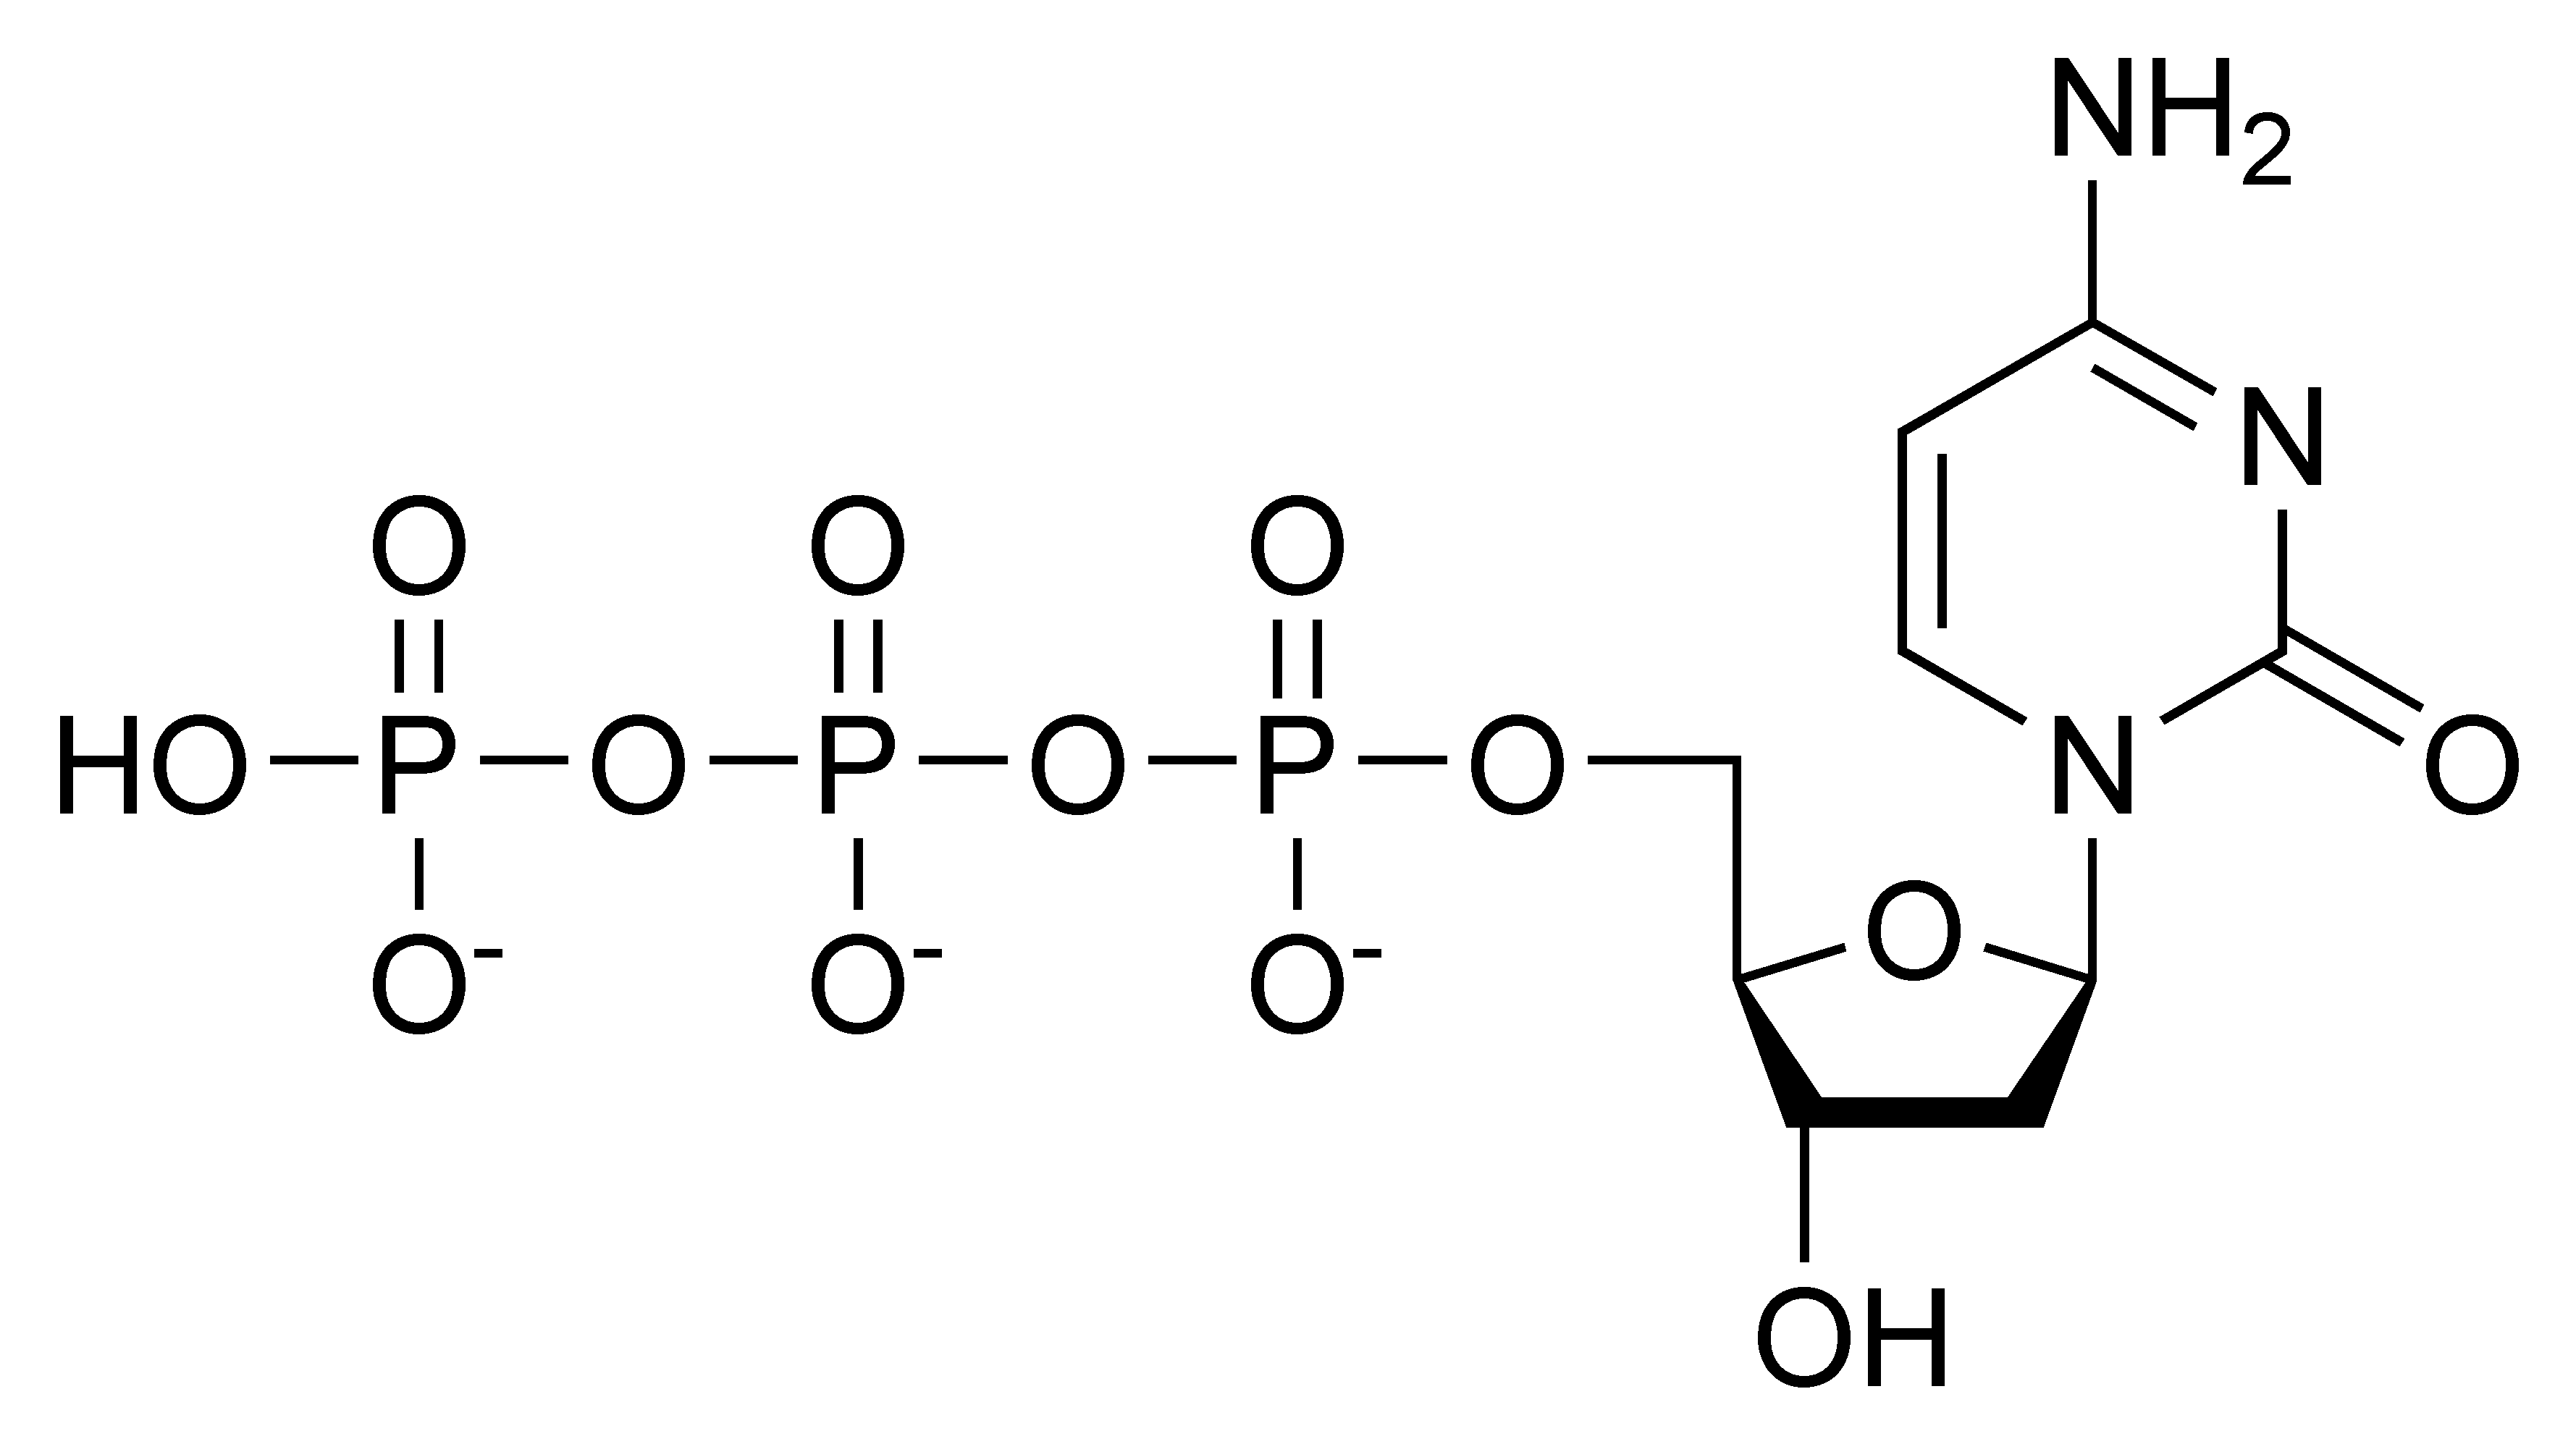 Chemical structure of deoxycytidine triphosphate